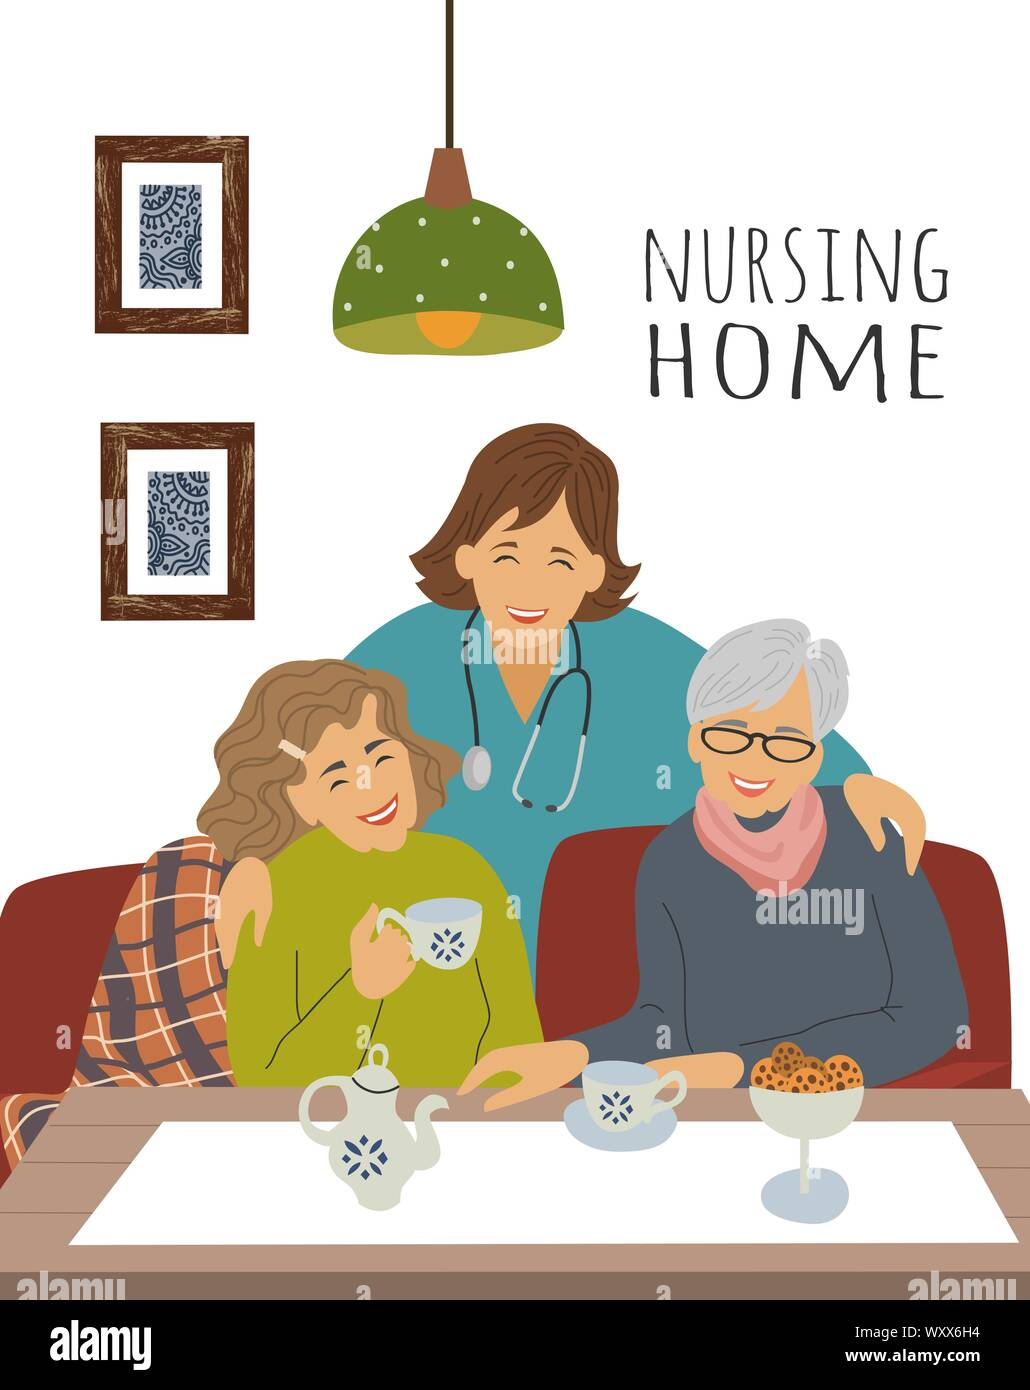 Nursing Home Cartoon : nursing, cartoon, Nursing, Home., Nurse, Cheerful, Elderly, Woman, Party., Celebration, Holiday, Social, Shelter., Vector, Illustration, Stock, Image, Alamy